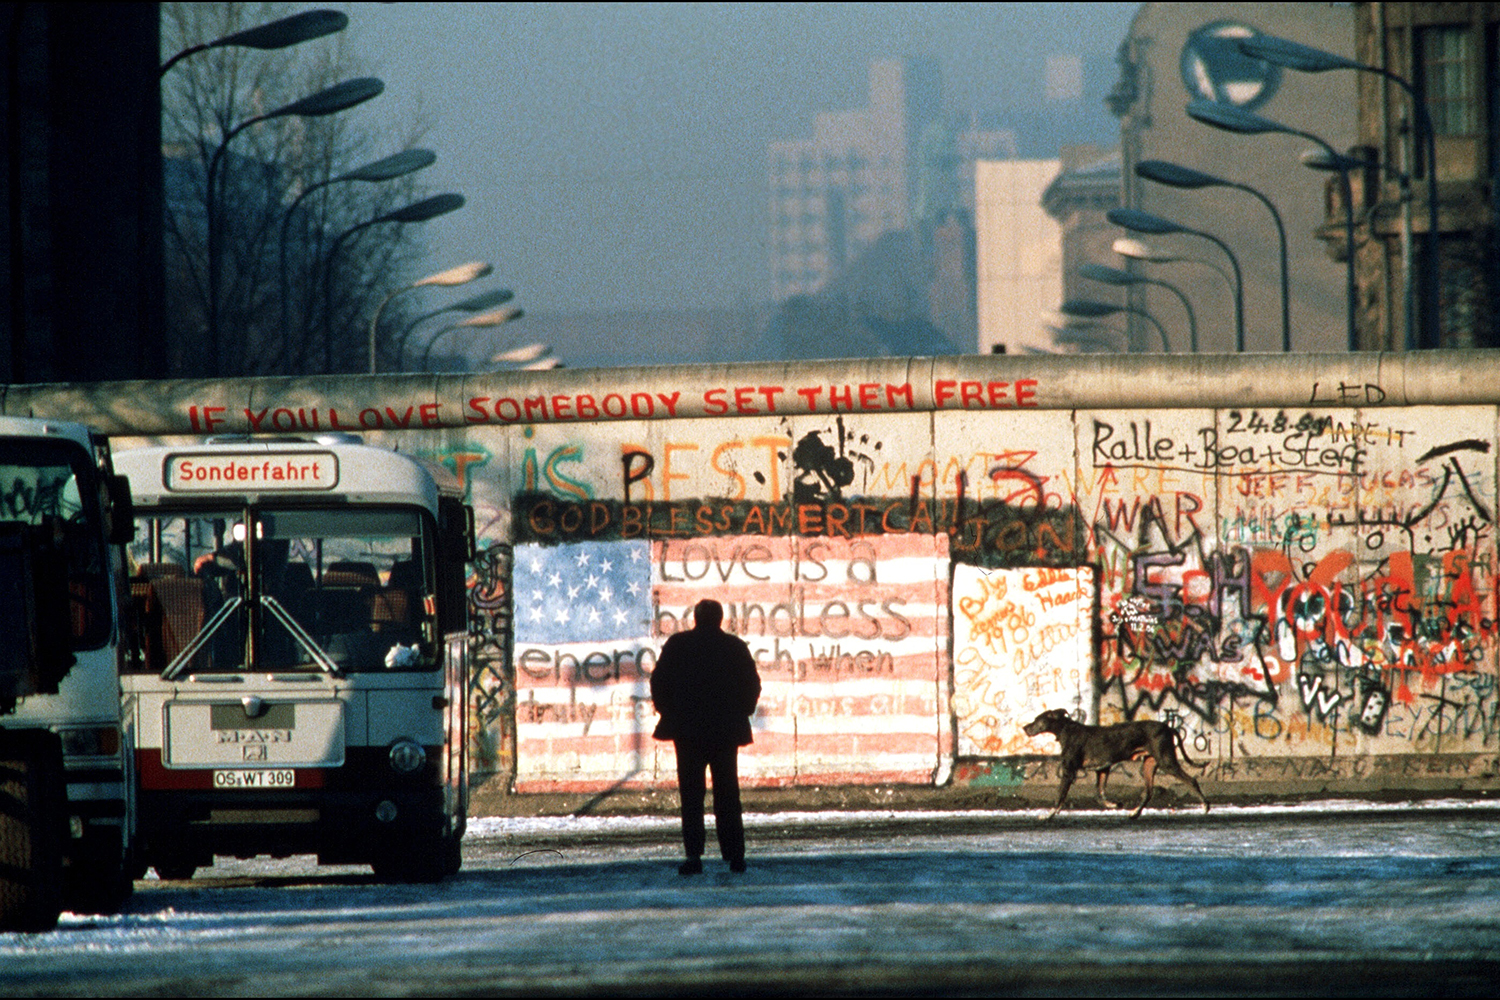 A section of the Berlin Wall in November 1989. Patrick Piel/Gamma-Rapho via Getty Images